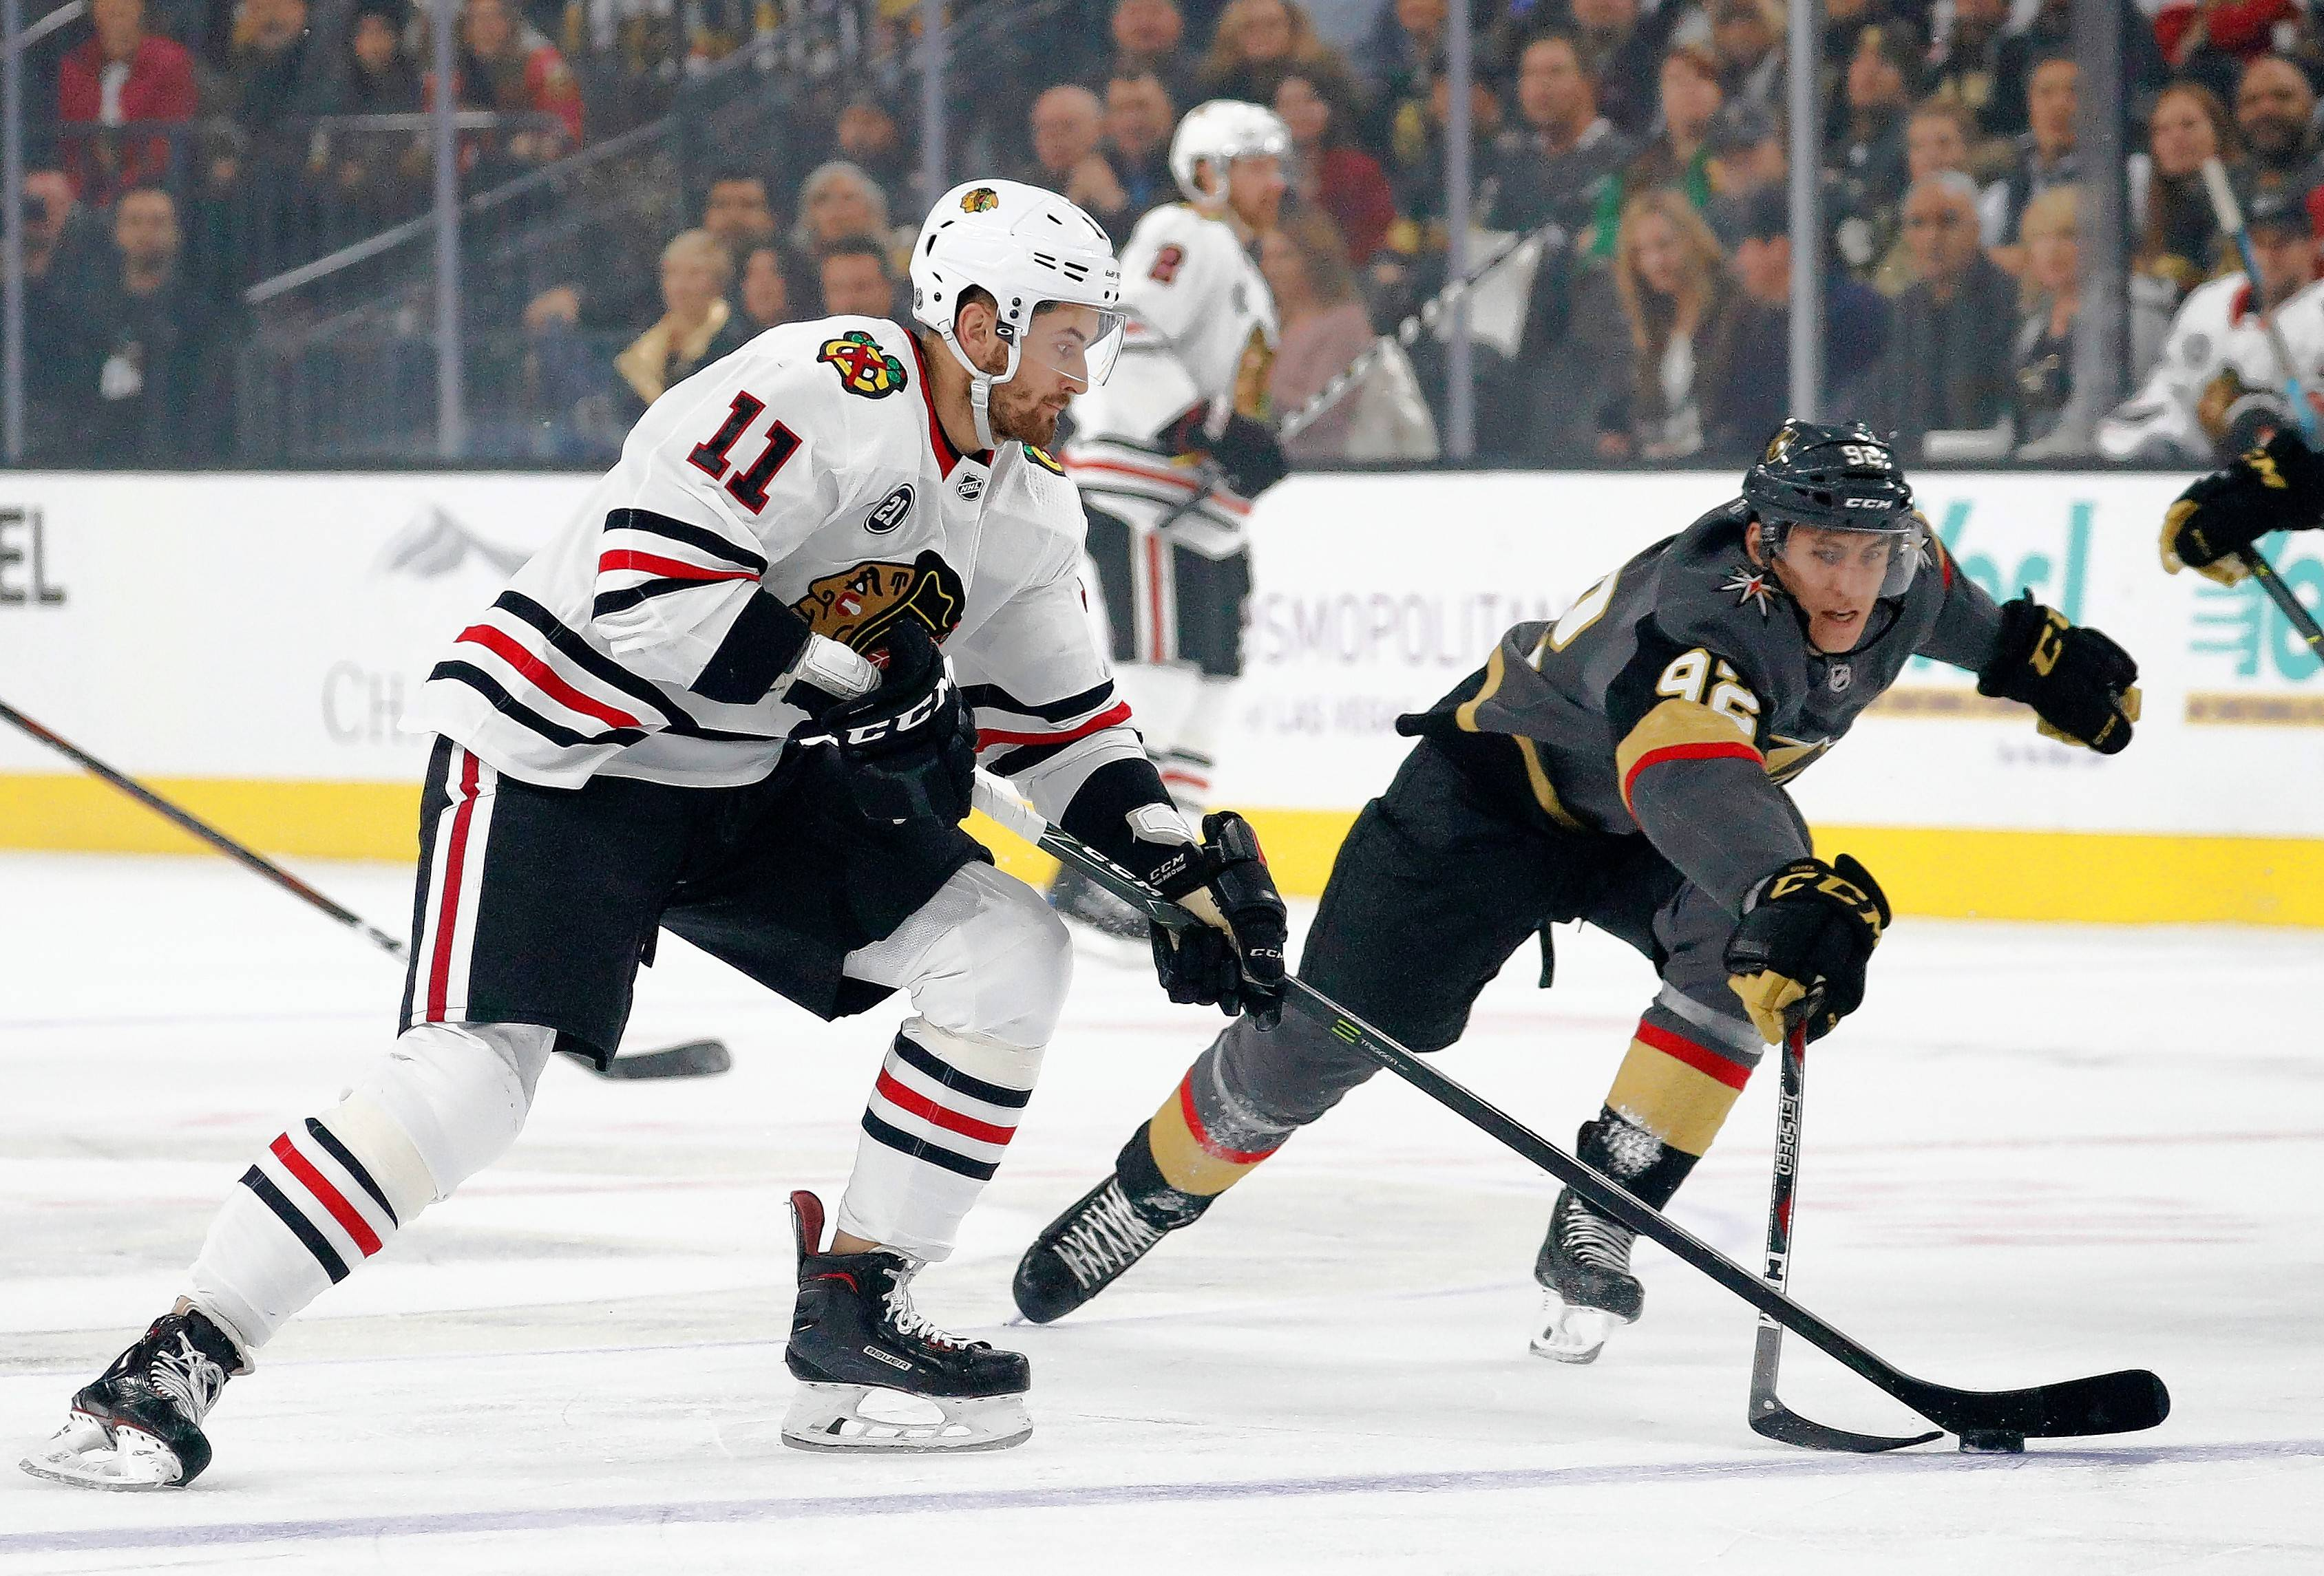 The Chicago Blackhawks made Brendan Perlini a healthy scratch against Montreal on Sunday. Perlini has struggled since being traded by Arizona as part of the Nick Schmaltz trade.